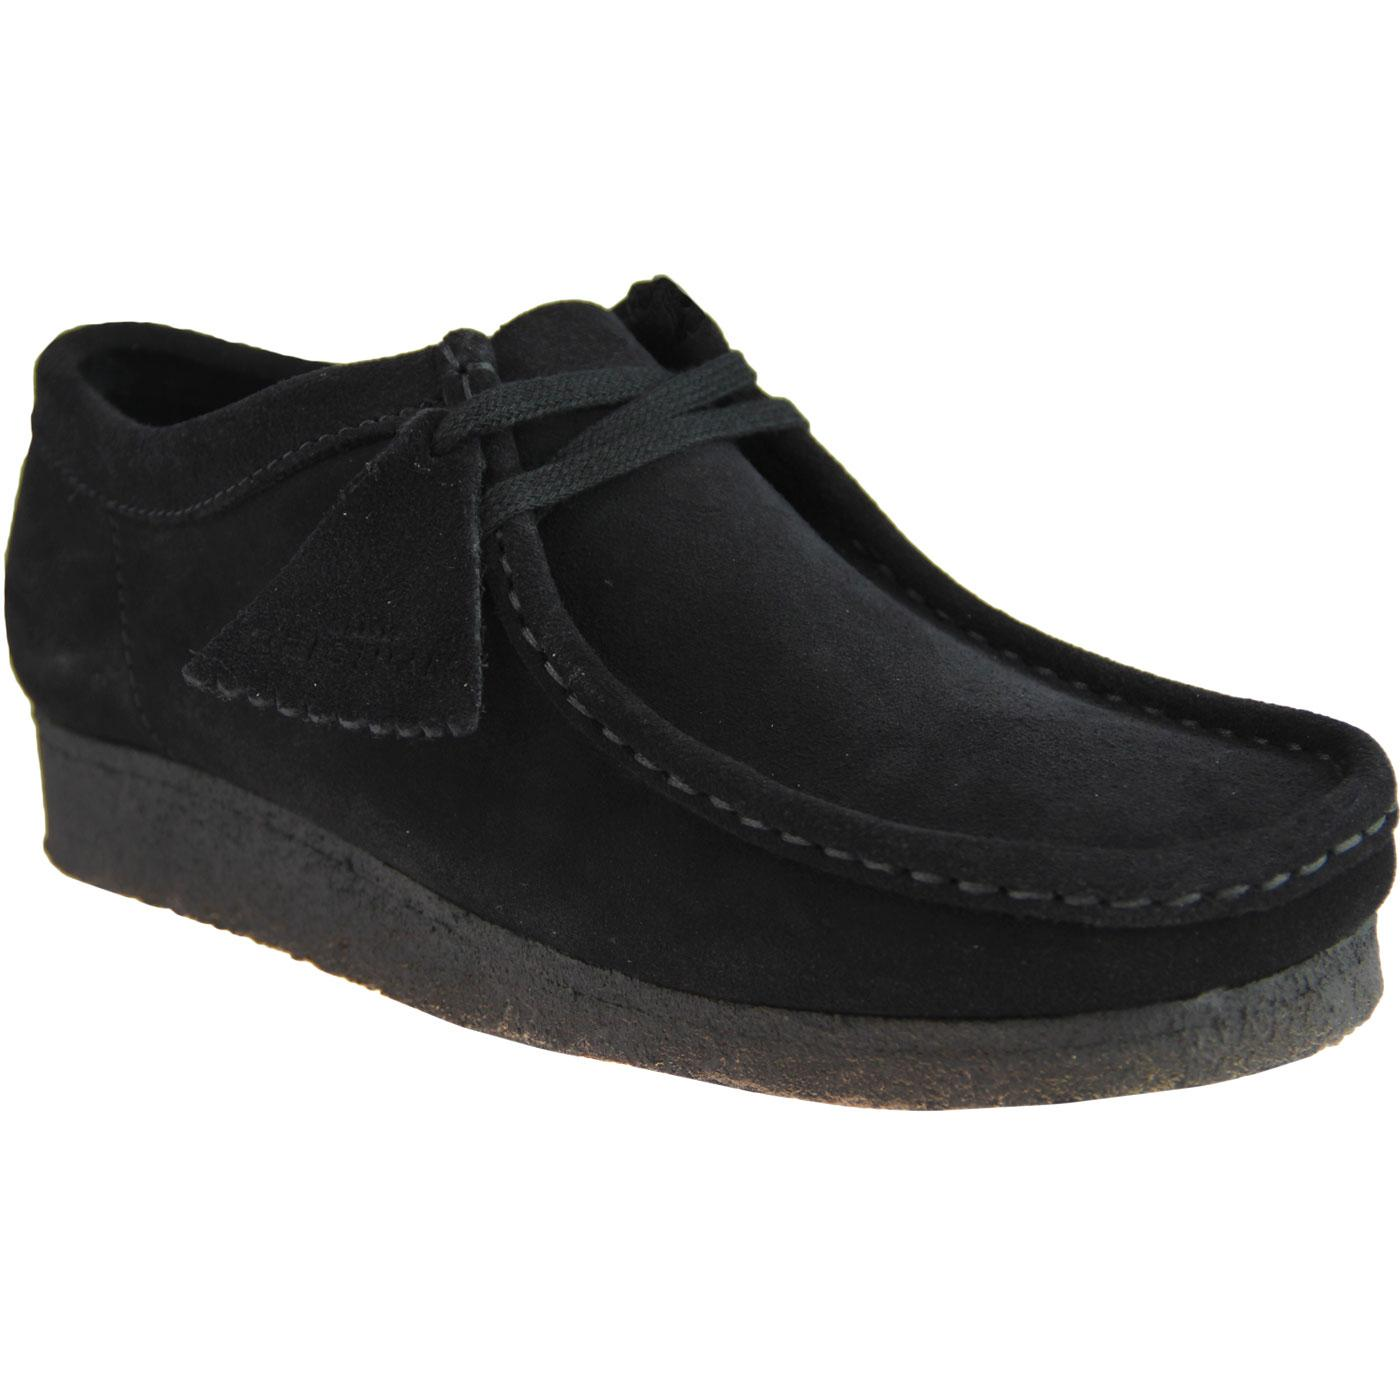 320626a65f01b CLARKS ORIGINALS Wallabee Mod Moccasin Shoes in Black